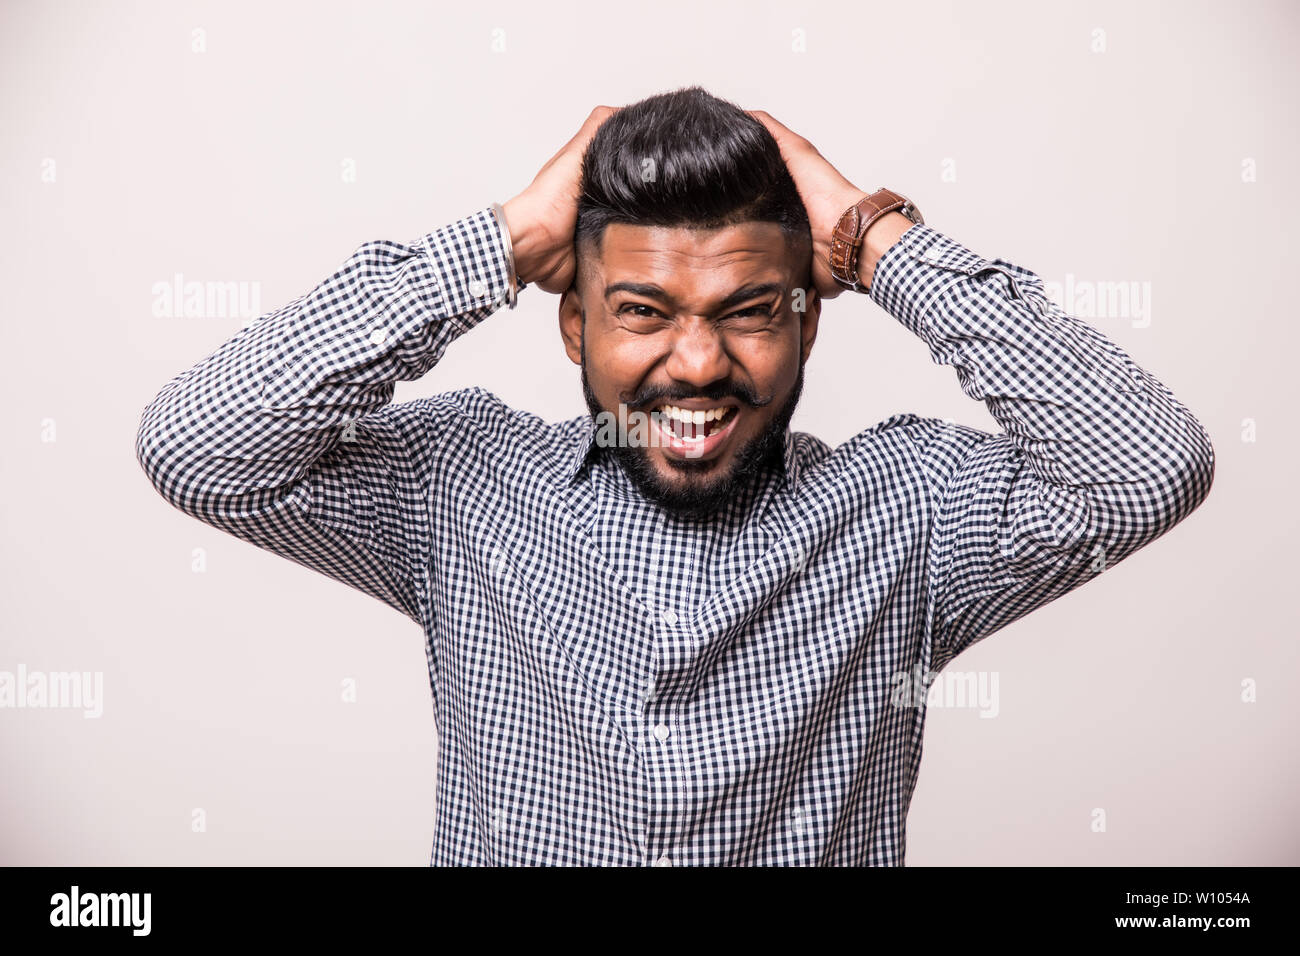 Hipster energetic man announcing something loudly. Isolated on white background. - Stock Image